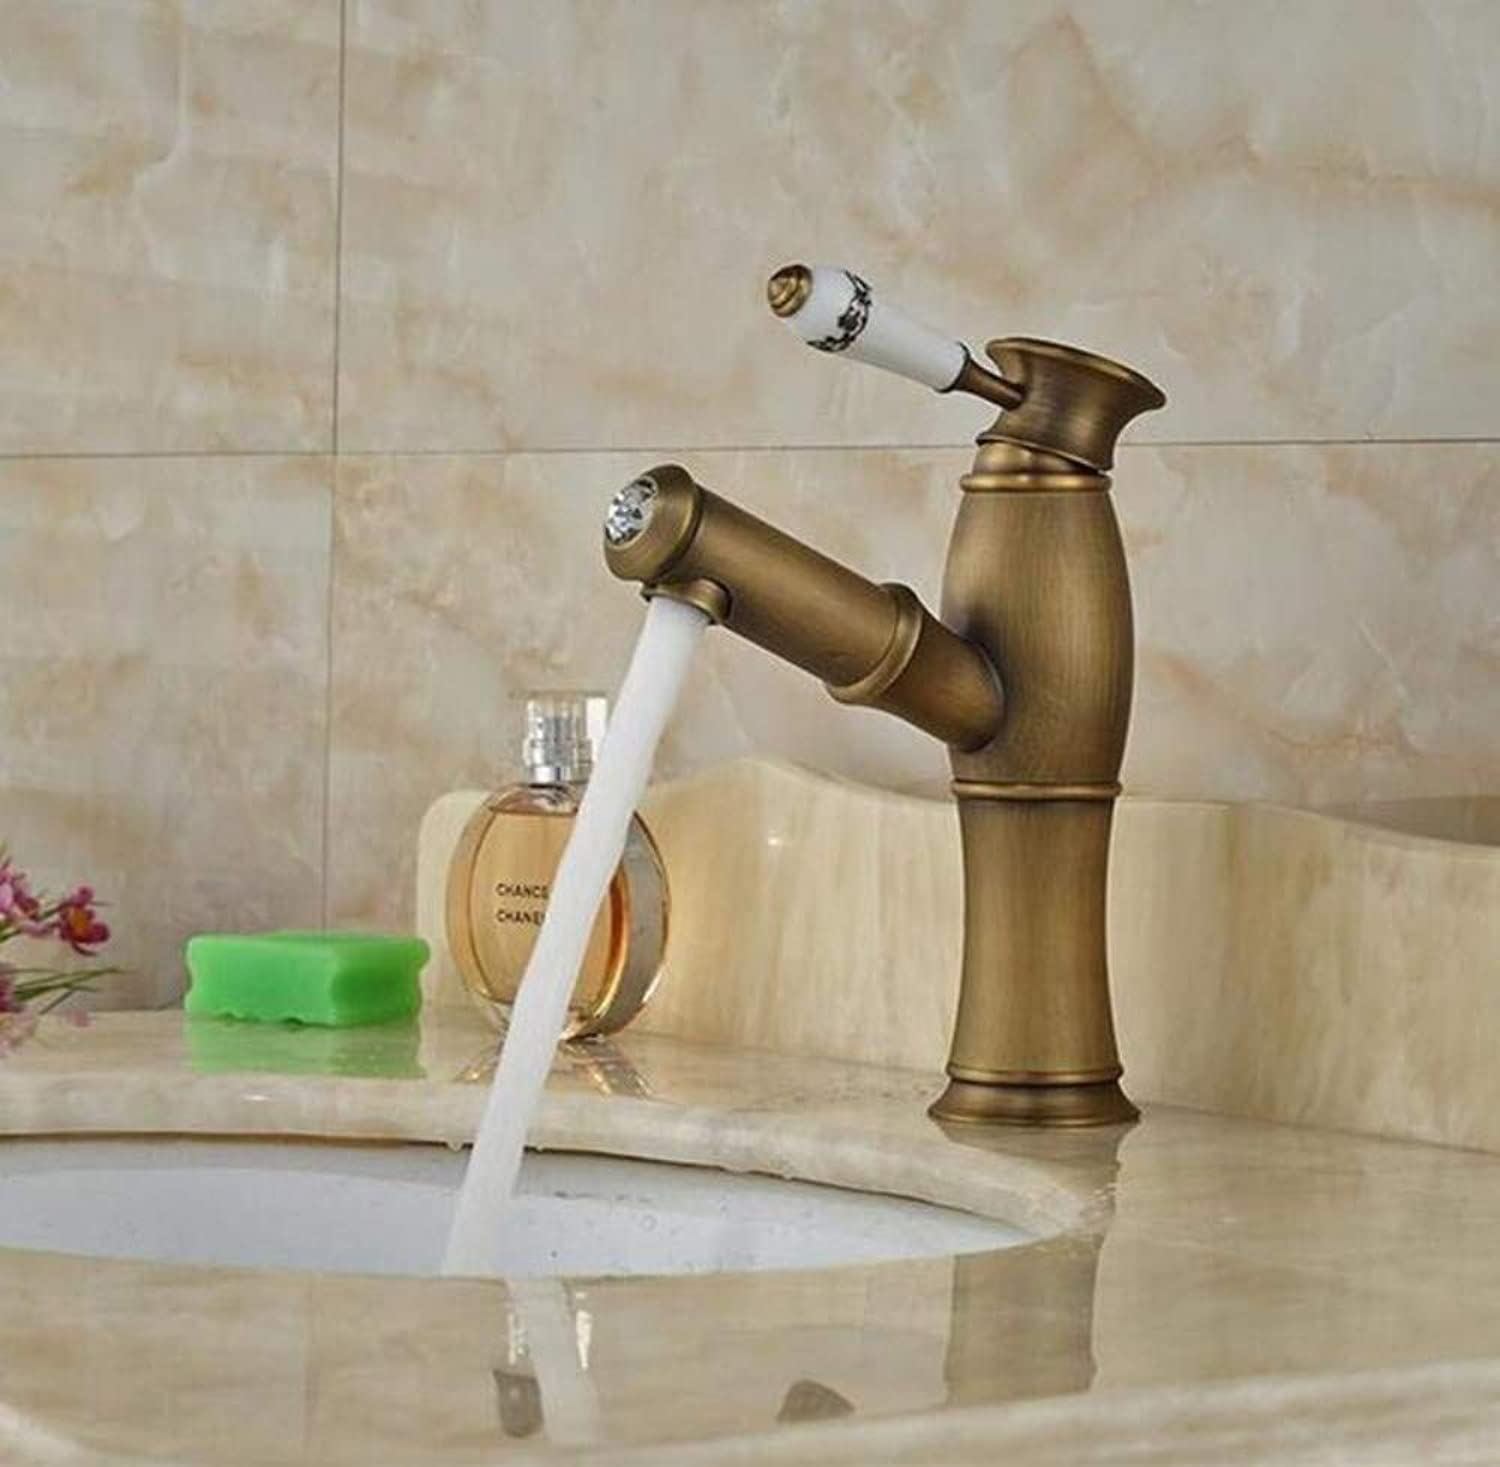 Brass Wall Faucet Chrome Brass Faucetwashing Hair Mixer Taps Single Ceramic Handle Cold and Hot Water Tap